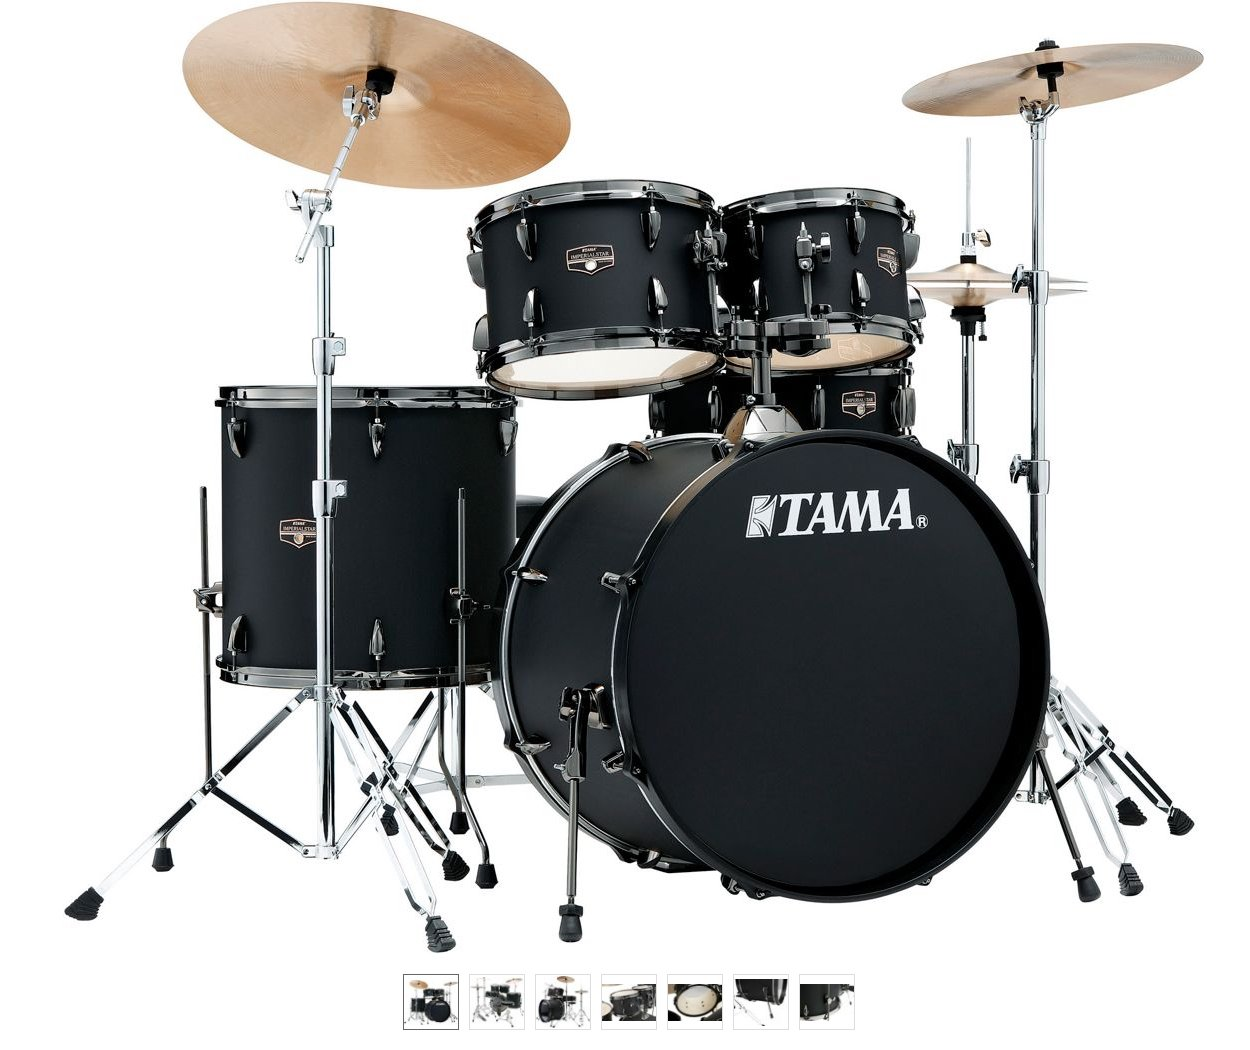 Tama Imperialstar IE52C 5-Piece Kit w/Cymbals - Blacked Out Black